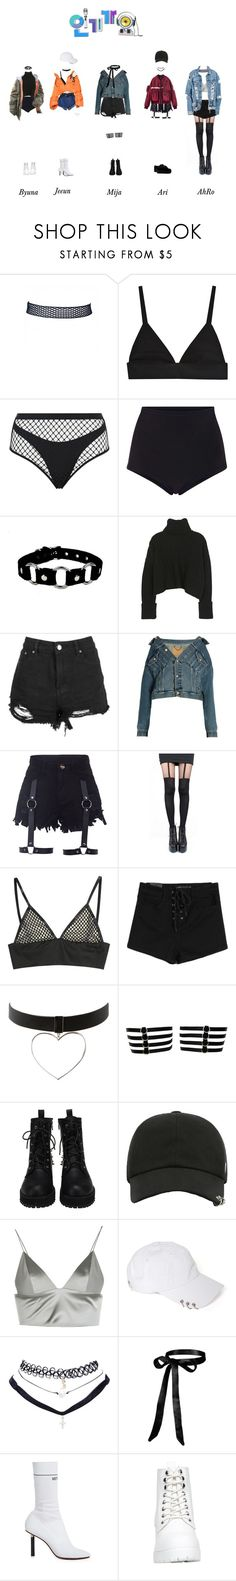 """elc - loser : DEBUT STAGE"" by officialelc ❤ liked on Polyvore featuring Agent Provocateur, Cynthia Rowley, Boohoo, Balenciaga, Pretty Polly, T By Alexander Wang, Wet Seal and Vetements"